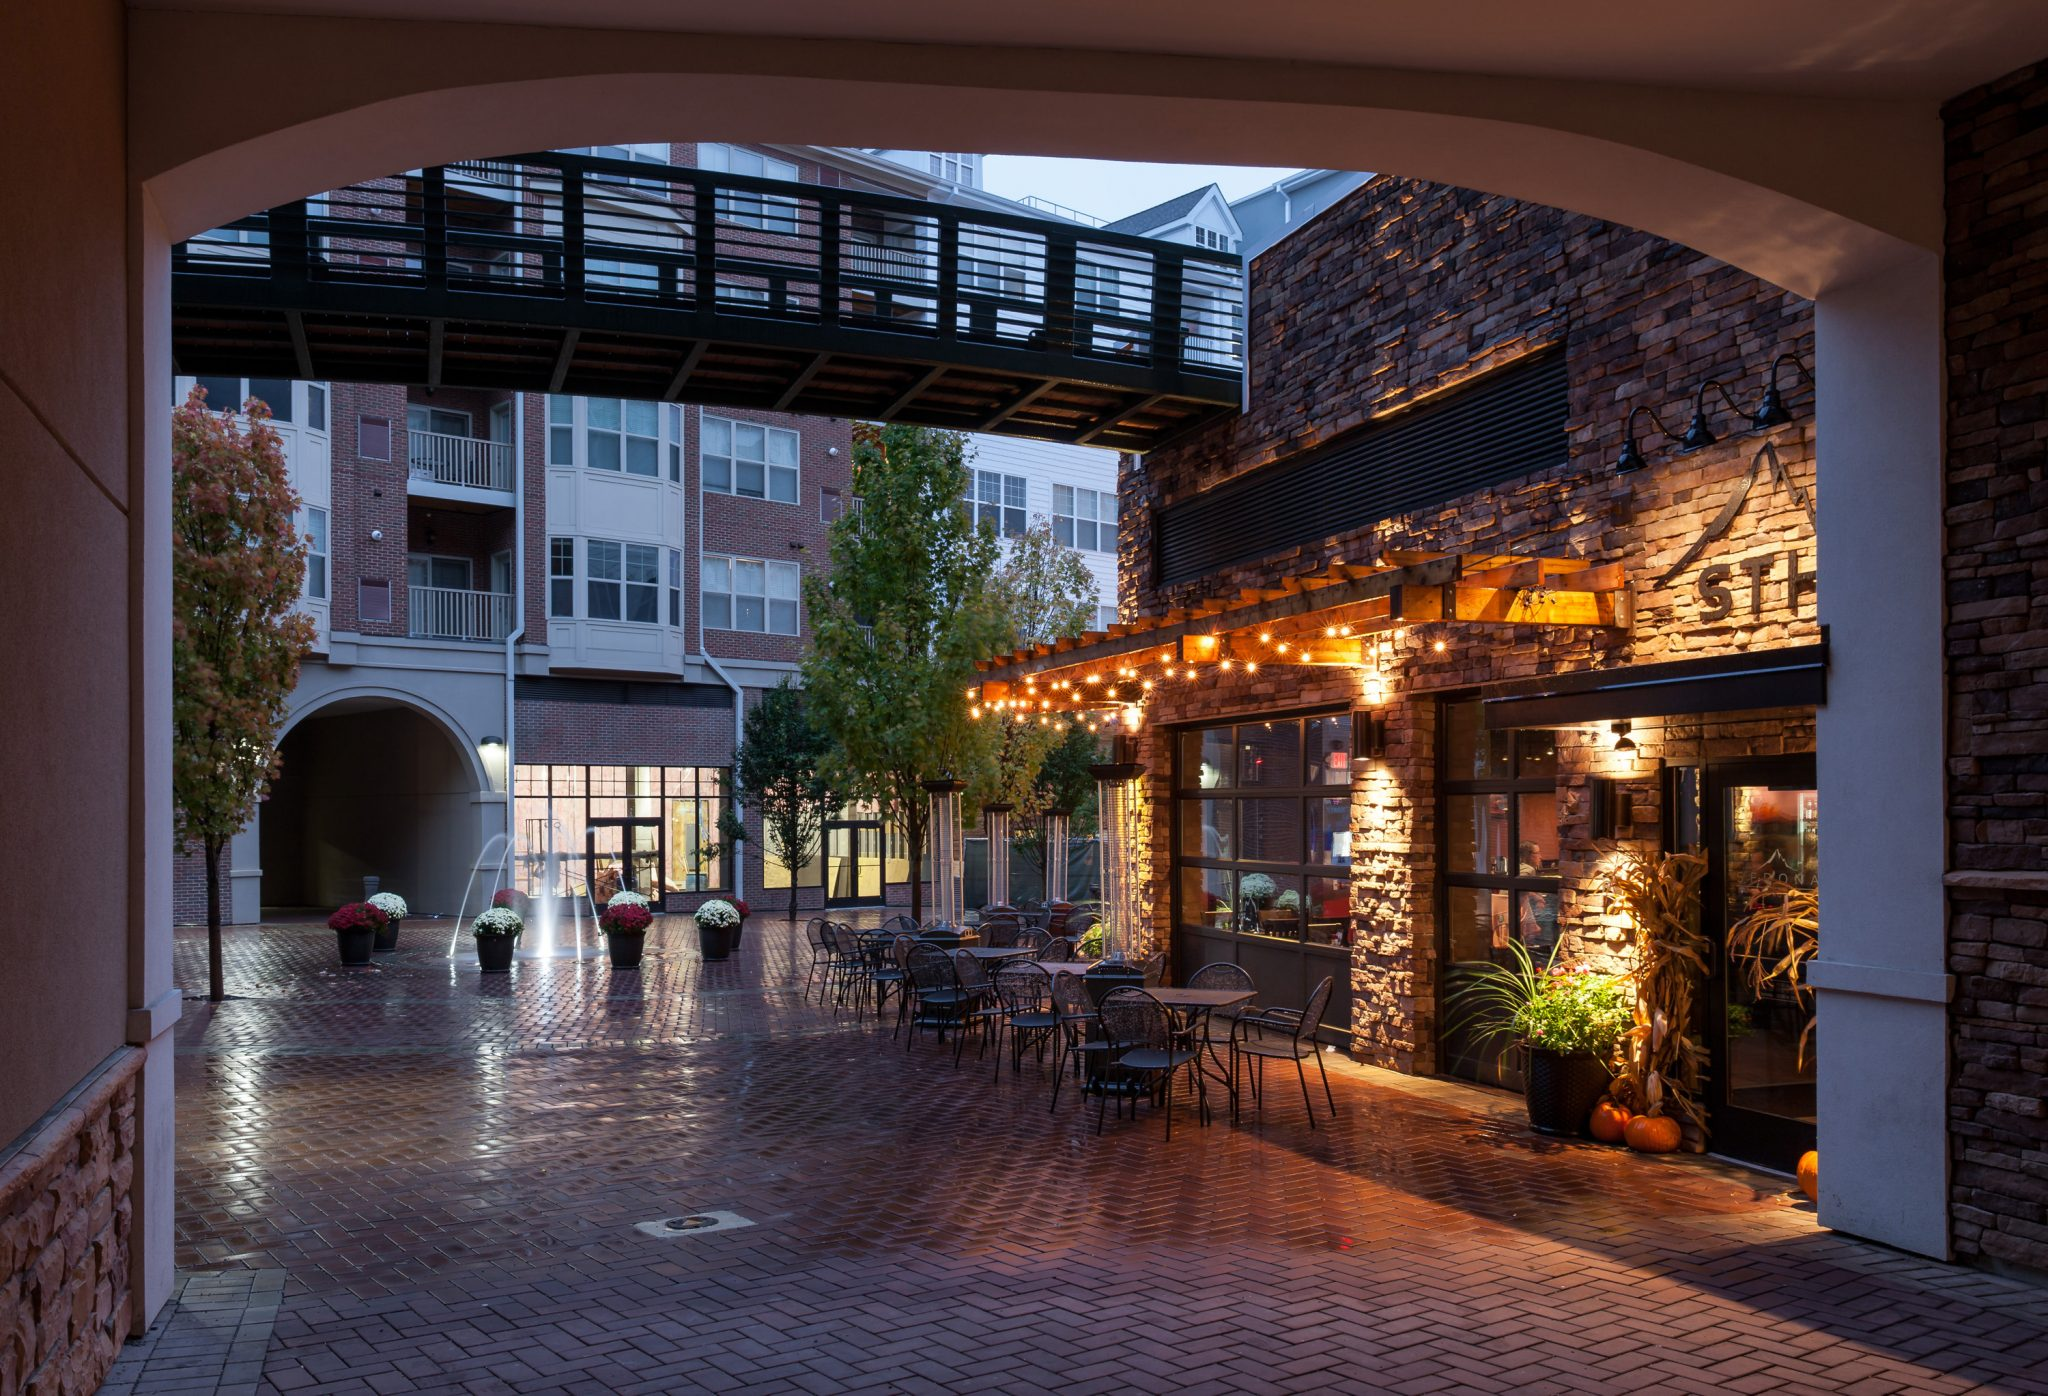 Exterior of courtyard with restaurant, fountain, and overhead walkway with apartment building in background